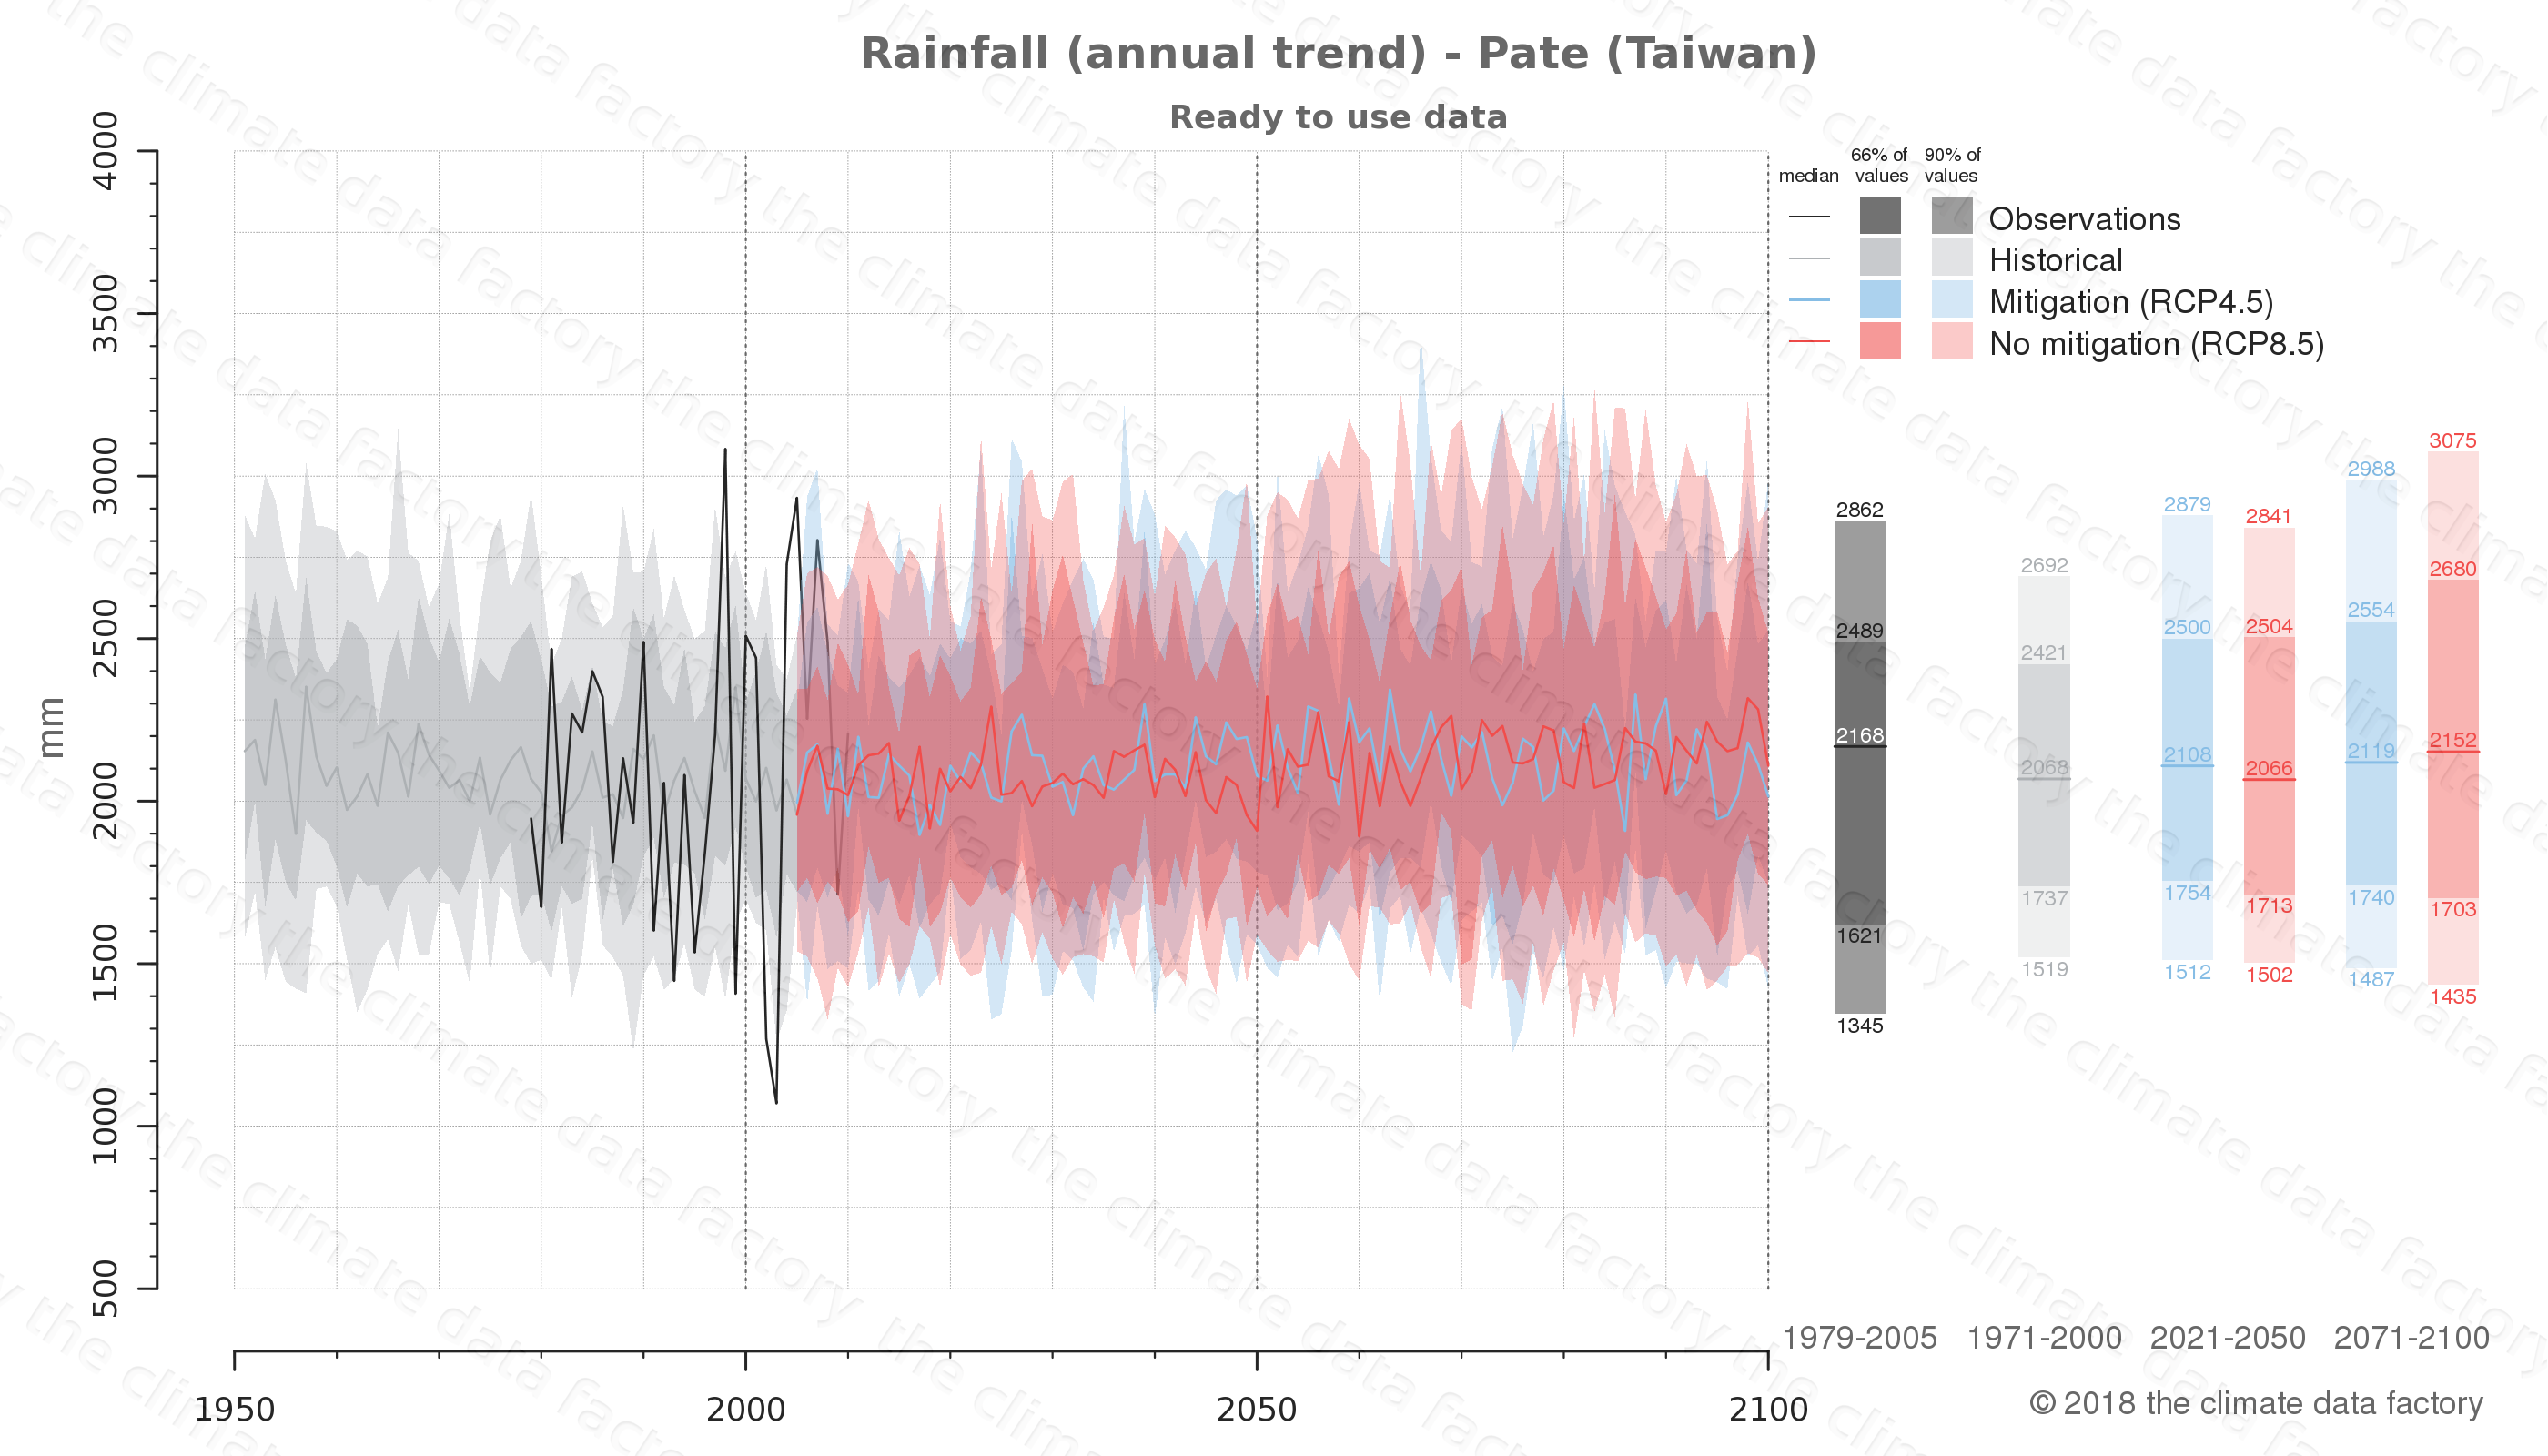 climate change data policy adaptation climate graph city data rainfall pate taiwan